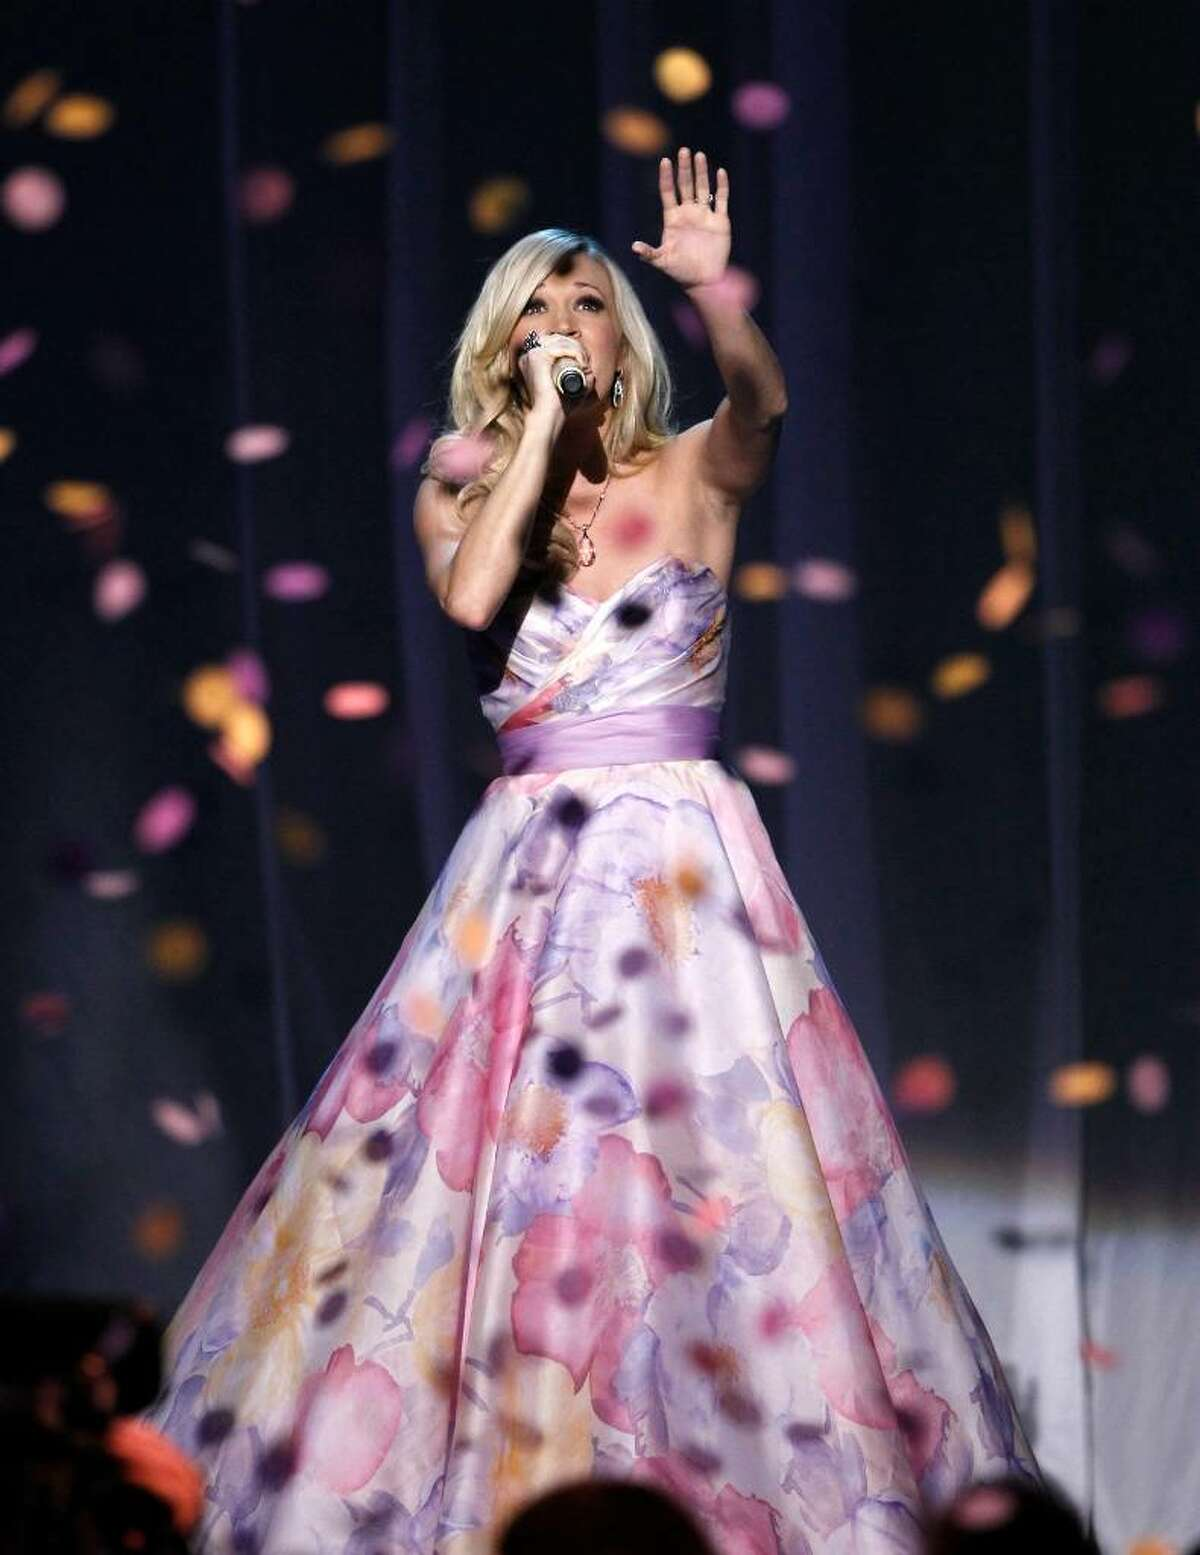 Carrie Underwood performs at the 45th Annual Academy of Country Music Awards in Las Vegas on Sunday, April 18, 2010. (AP Photo/Matt Sayles)